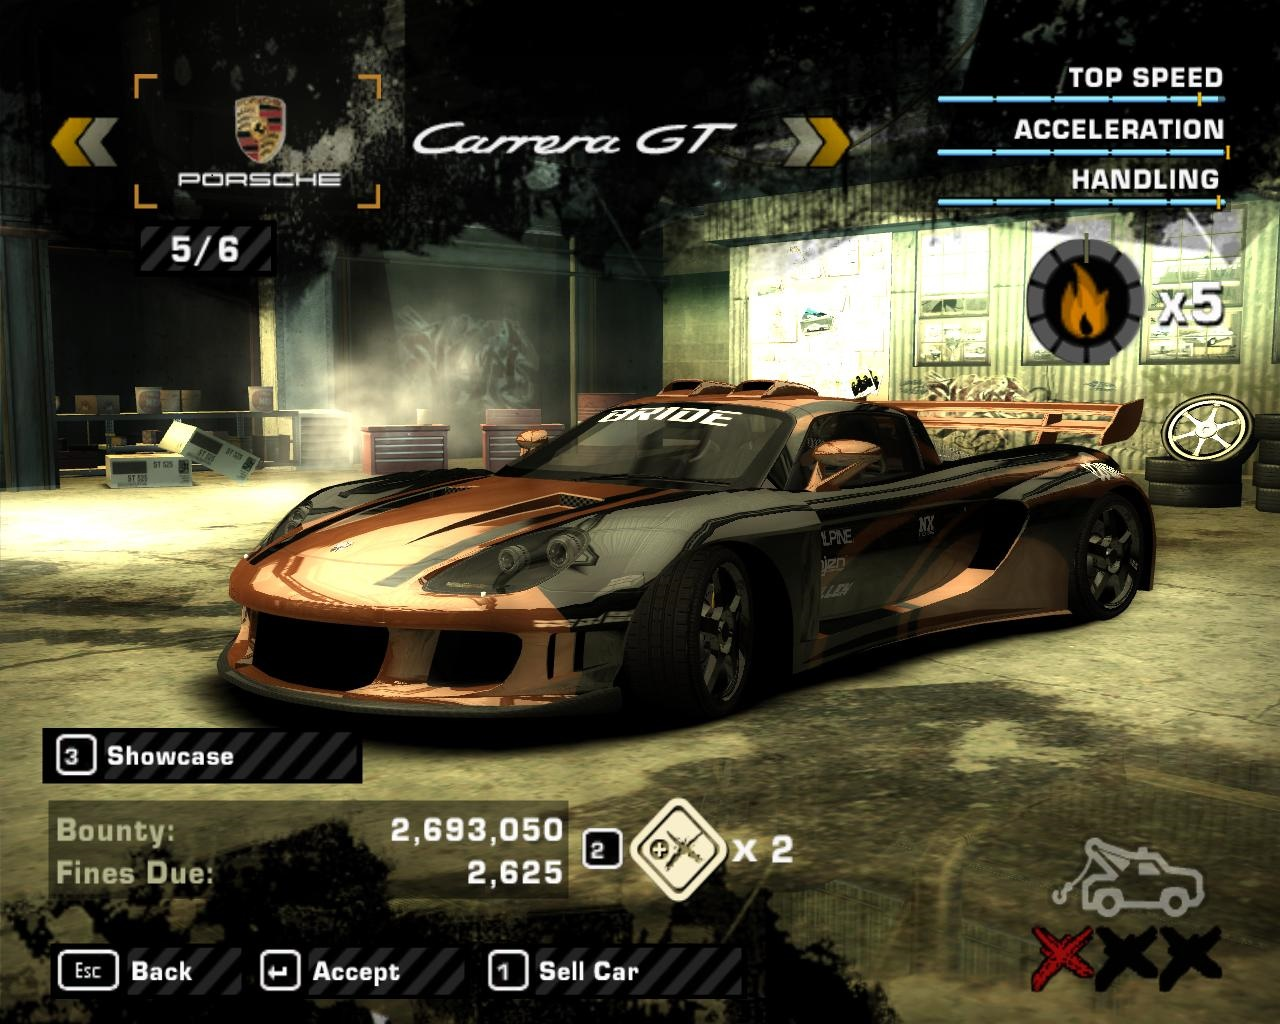 Nfs most wanted 2005 full game download for android 7